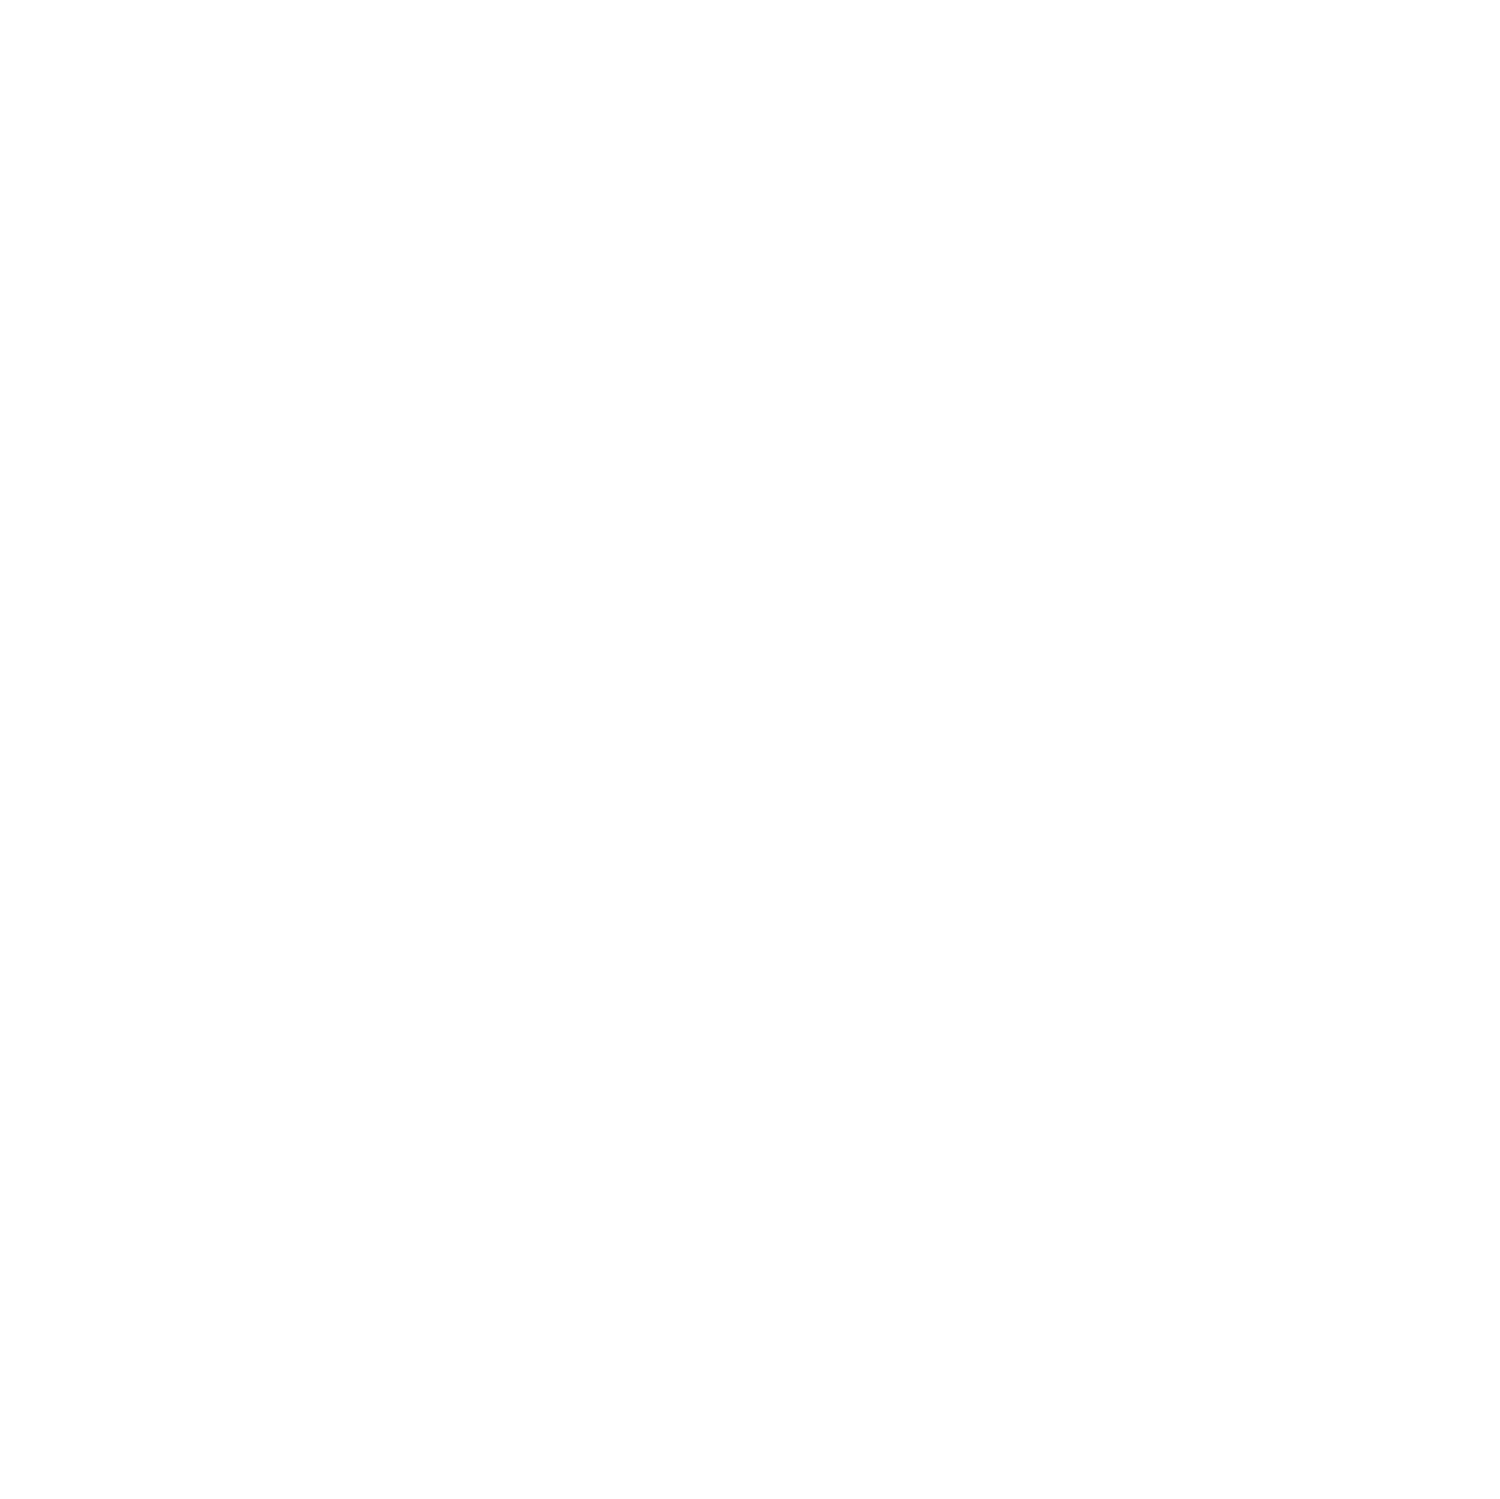 Hope Church in Tempe, Arizona